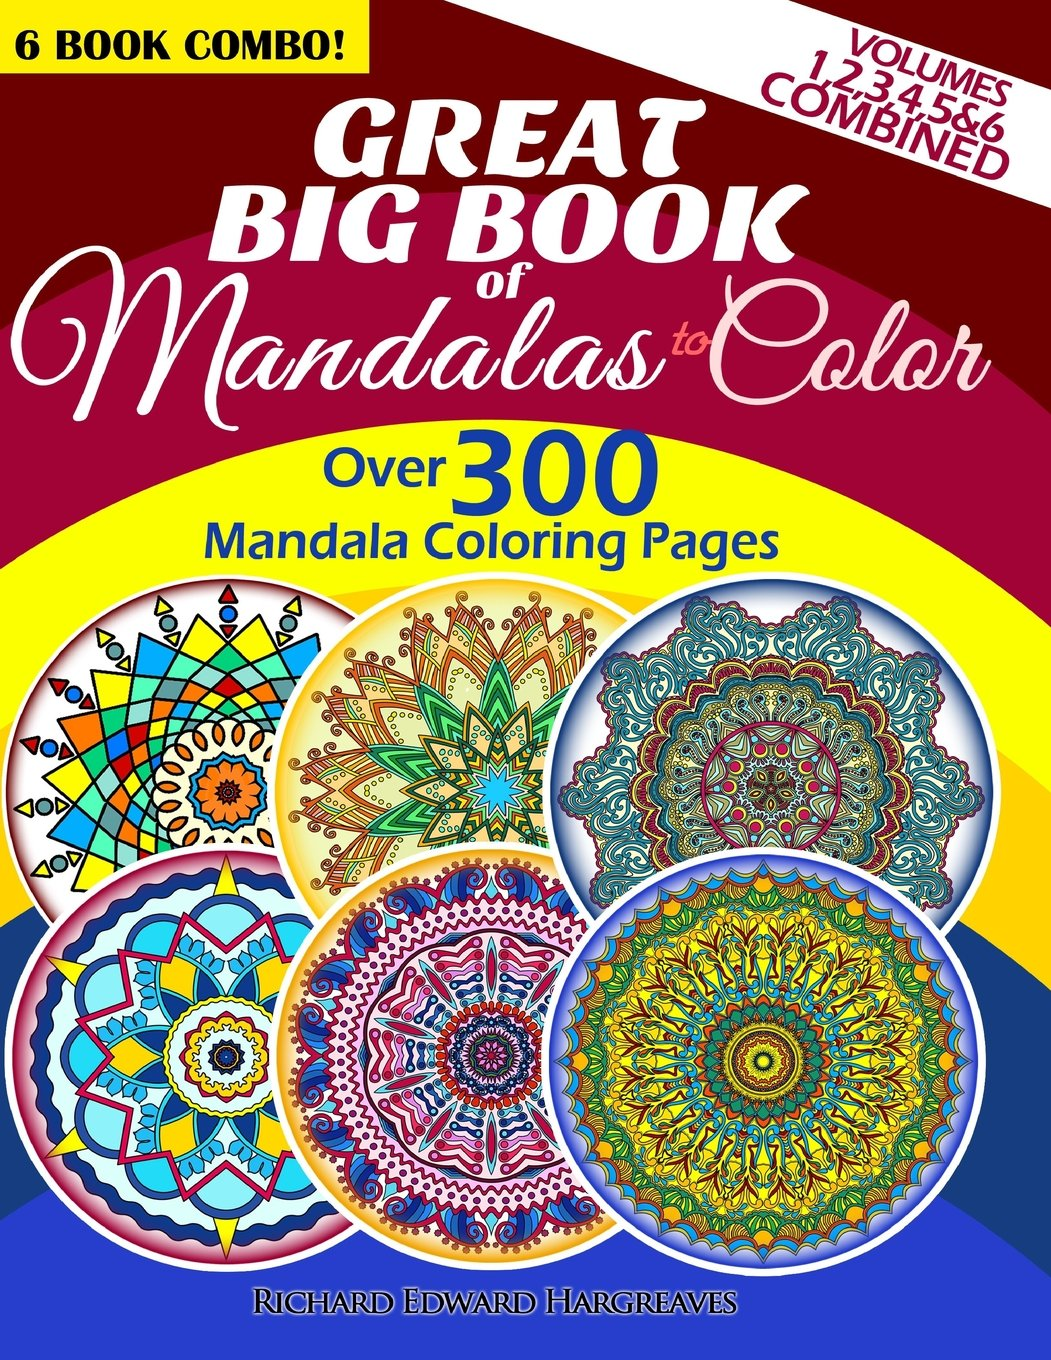 The mandala coloring book jim gogarty - Amazon Com Great Big Book Of Mandalas To Color Over 300 Mandala Coloring Pages Vol 1 2 3 4 5 6 Combined 6 Book Combo Ranging From Simple Easy